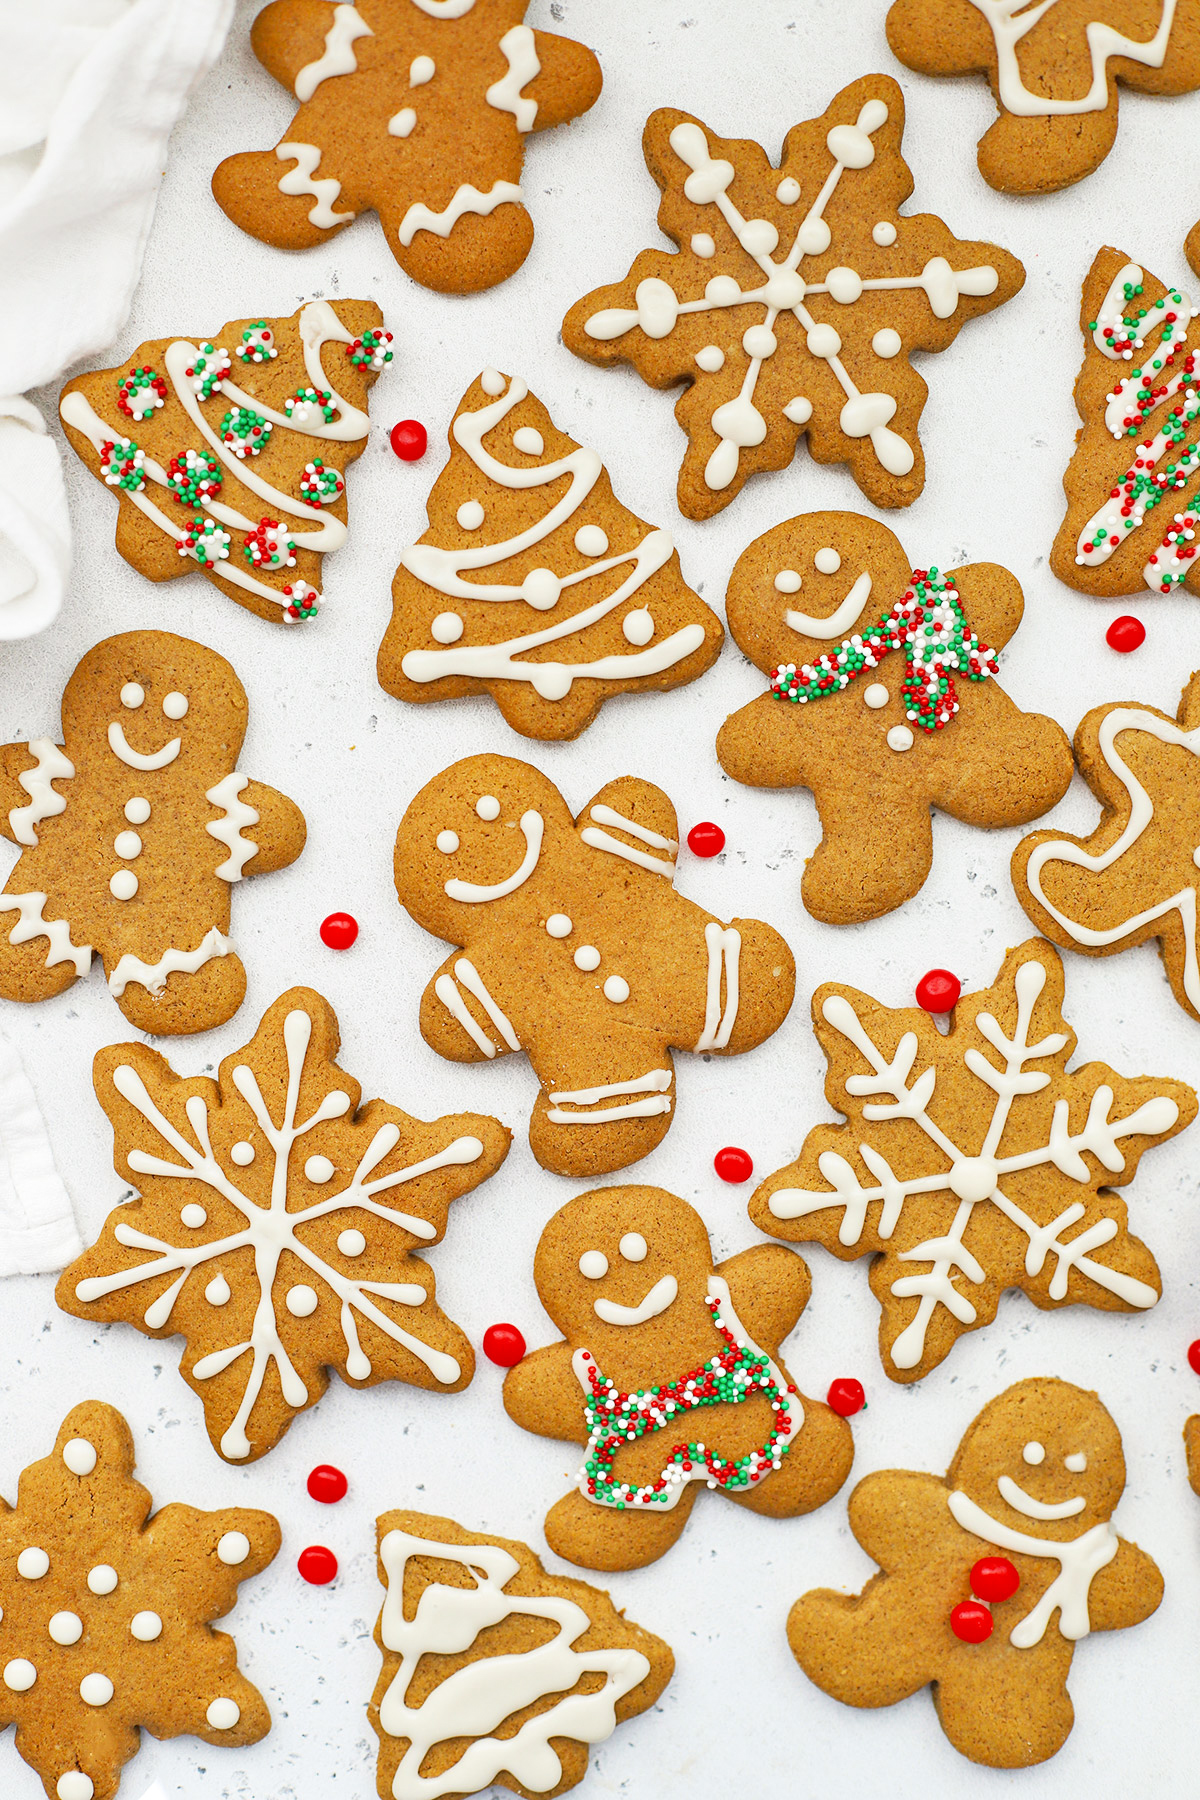 Overhead view of decorated gluten-free gingerbread cookies shaped like gingerbread men, snowflakes, and trees on a white background